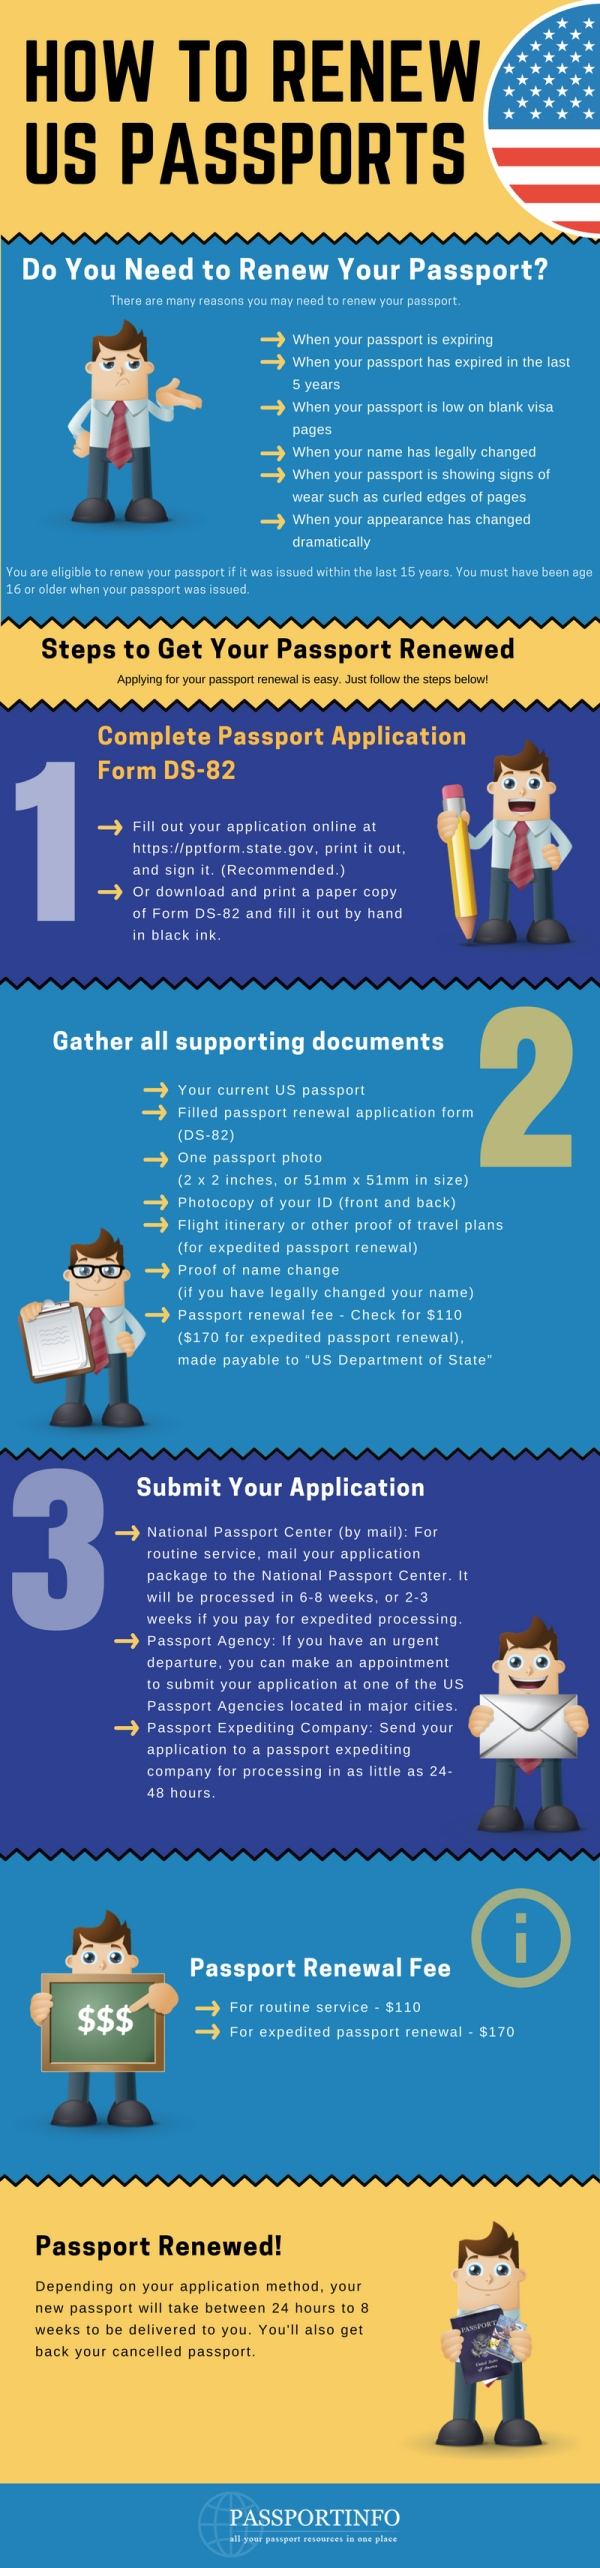 Passport renewal a resource guide to expedite us passport services this passport renewal infographic guides you with step by step procedures to renew your us passport falaconquin